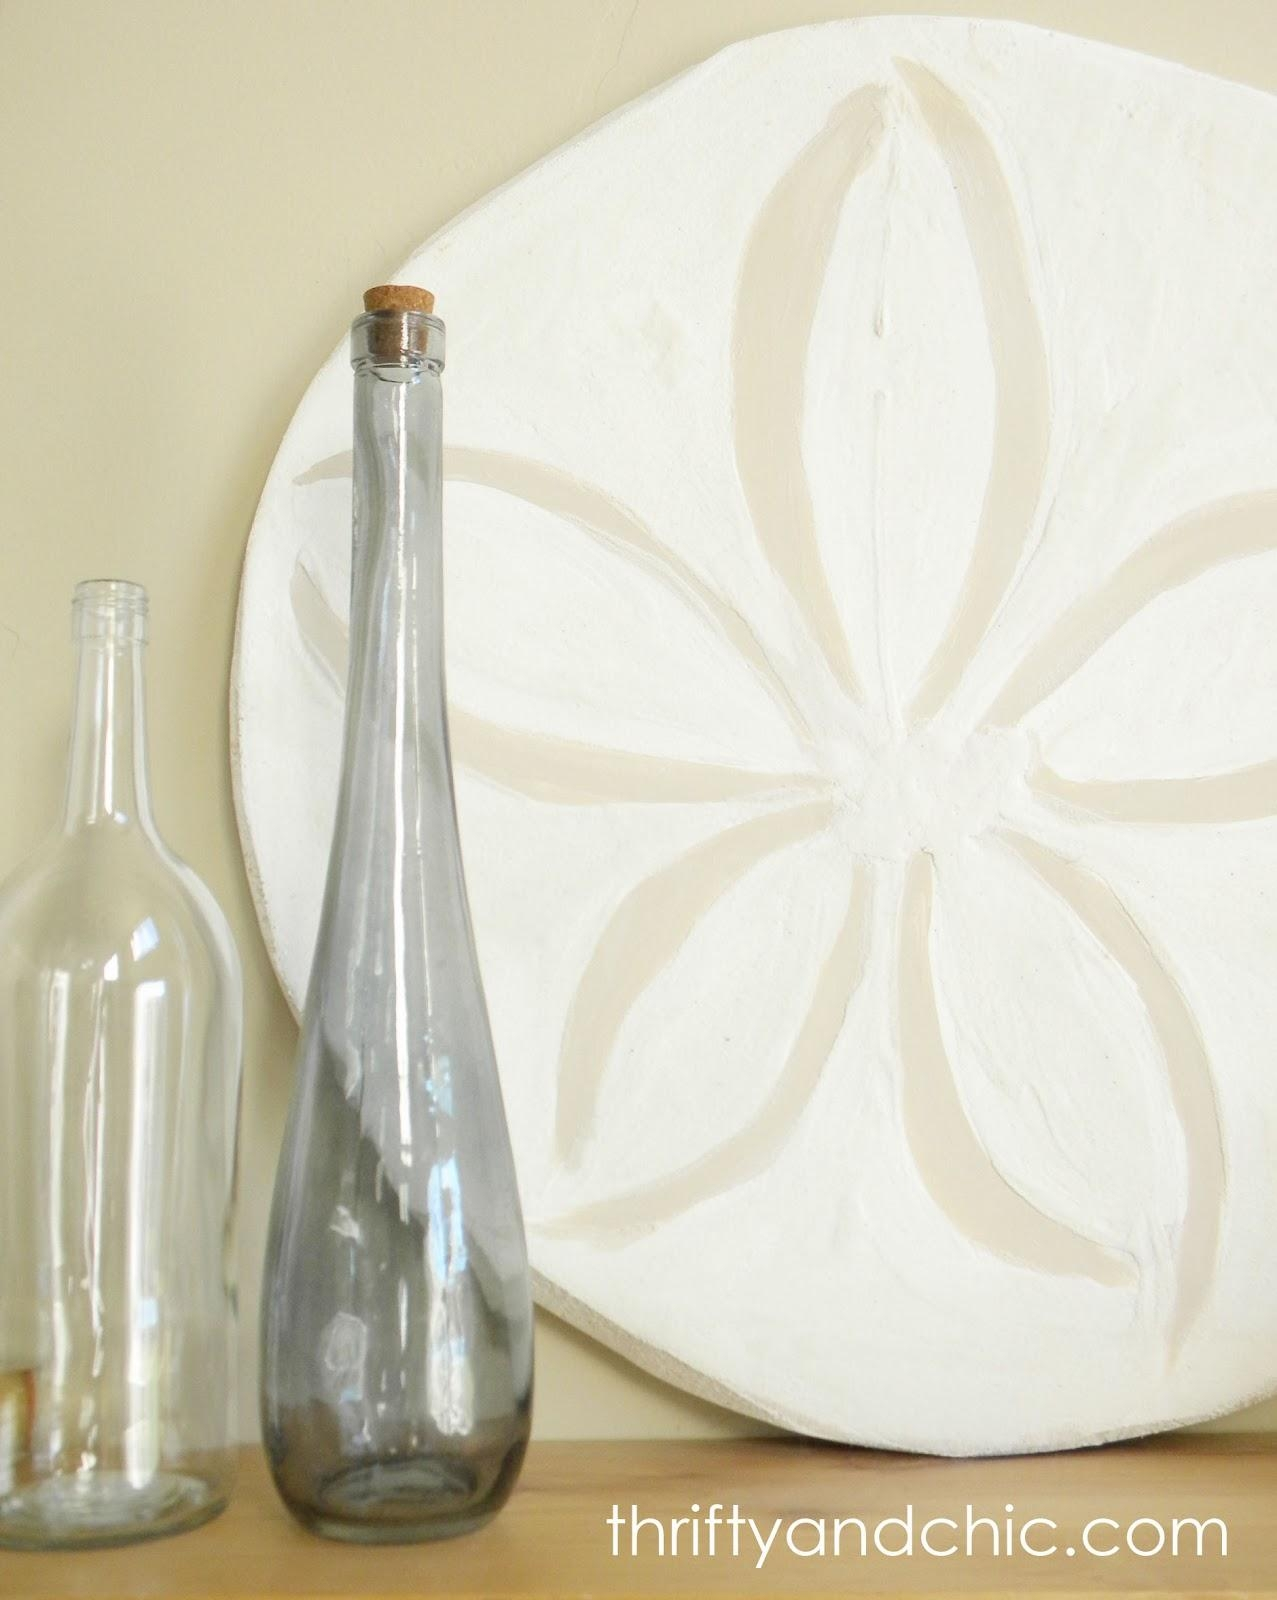 Thrifty And Chic – Diy Projects And Home Decor Inside Sand Dollar Wall Art (Image 17 of 20)